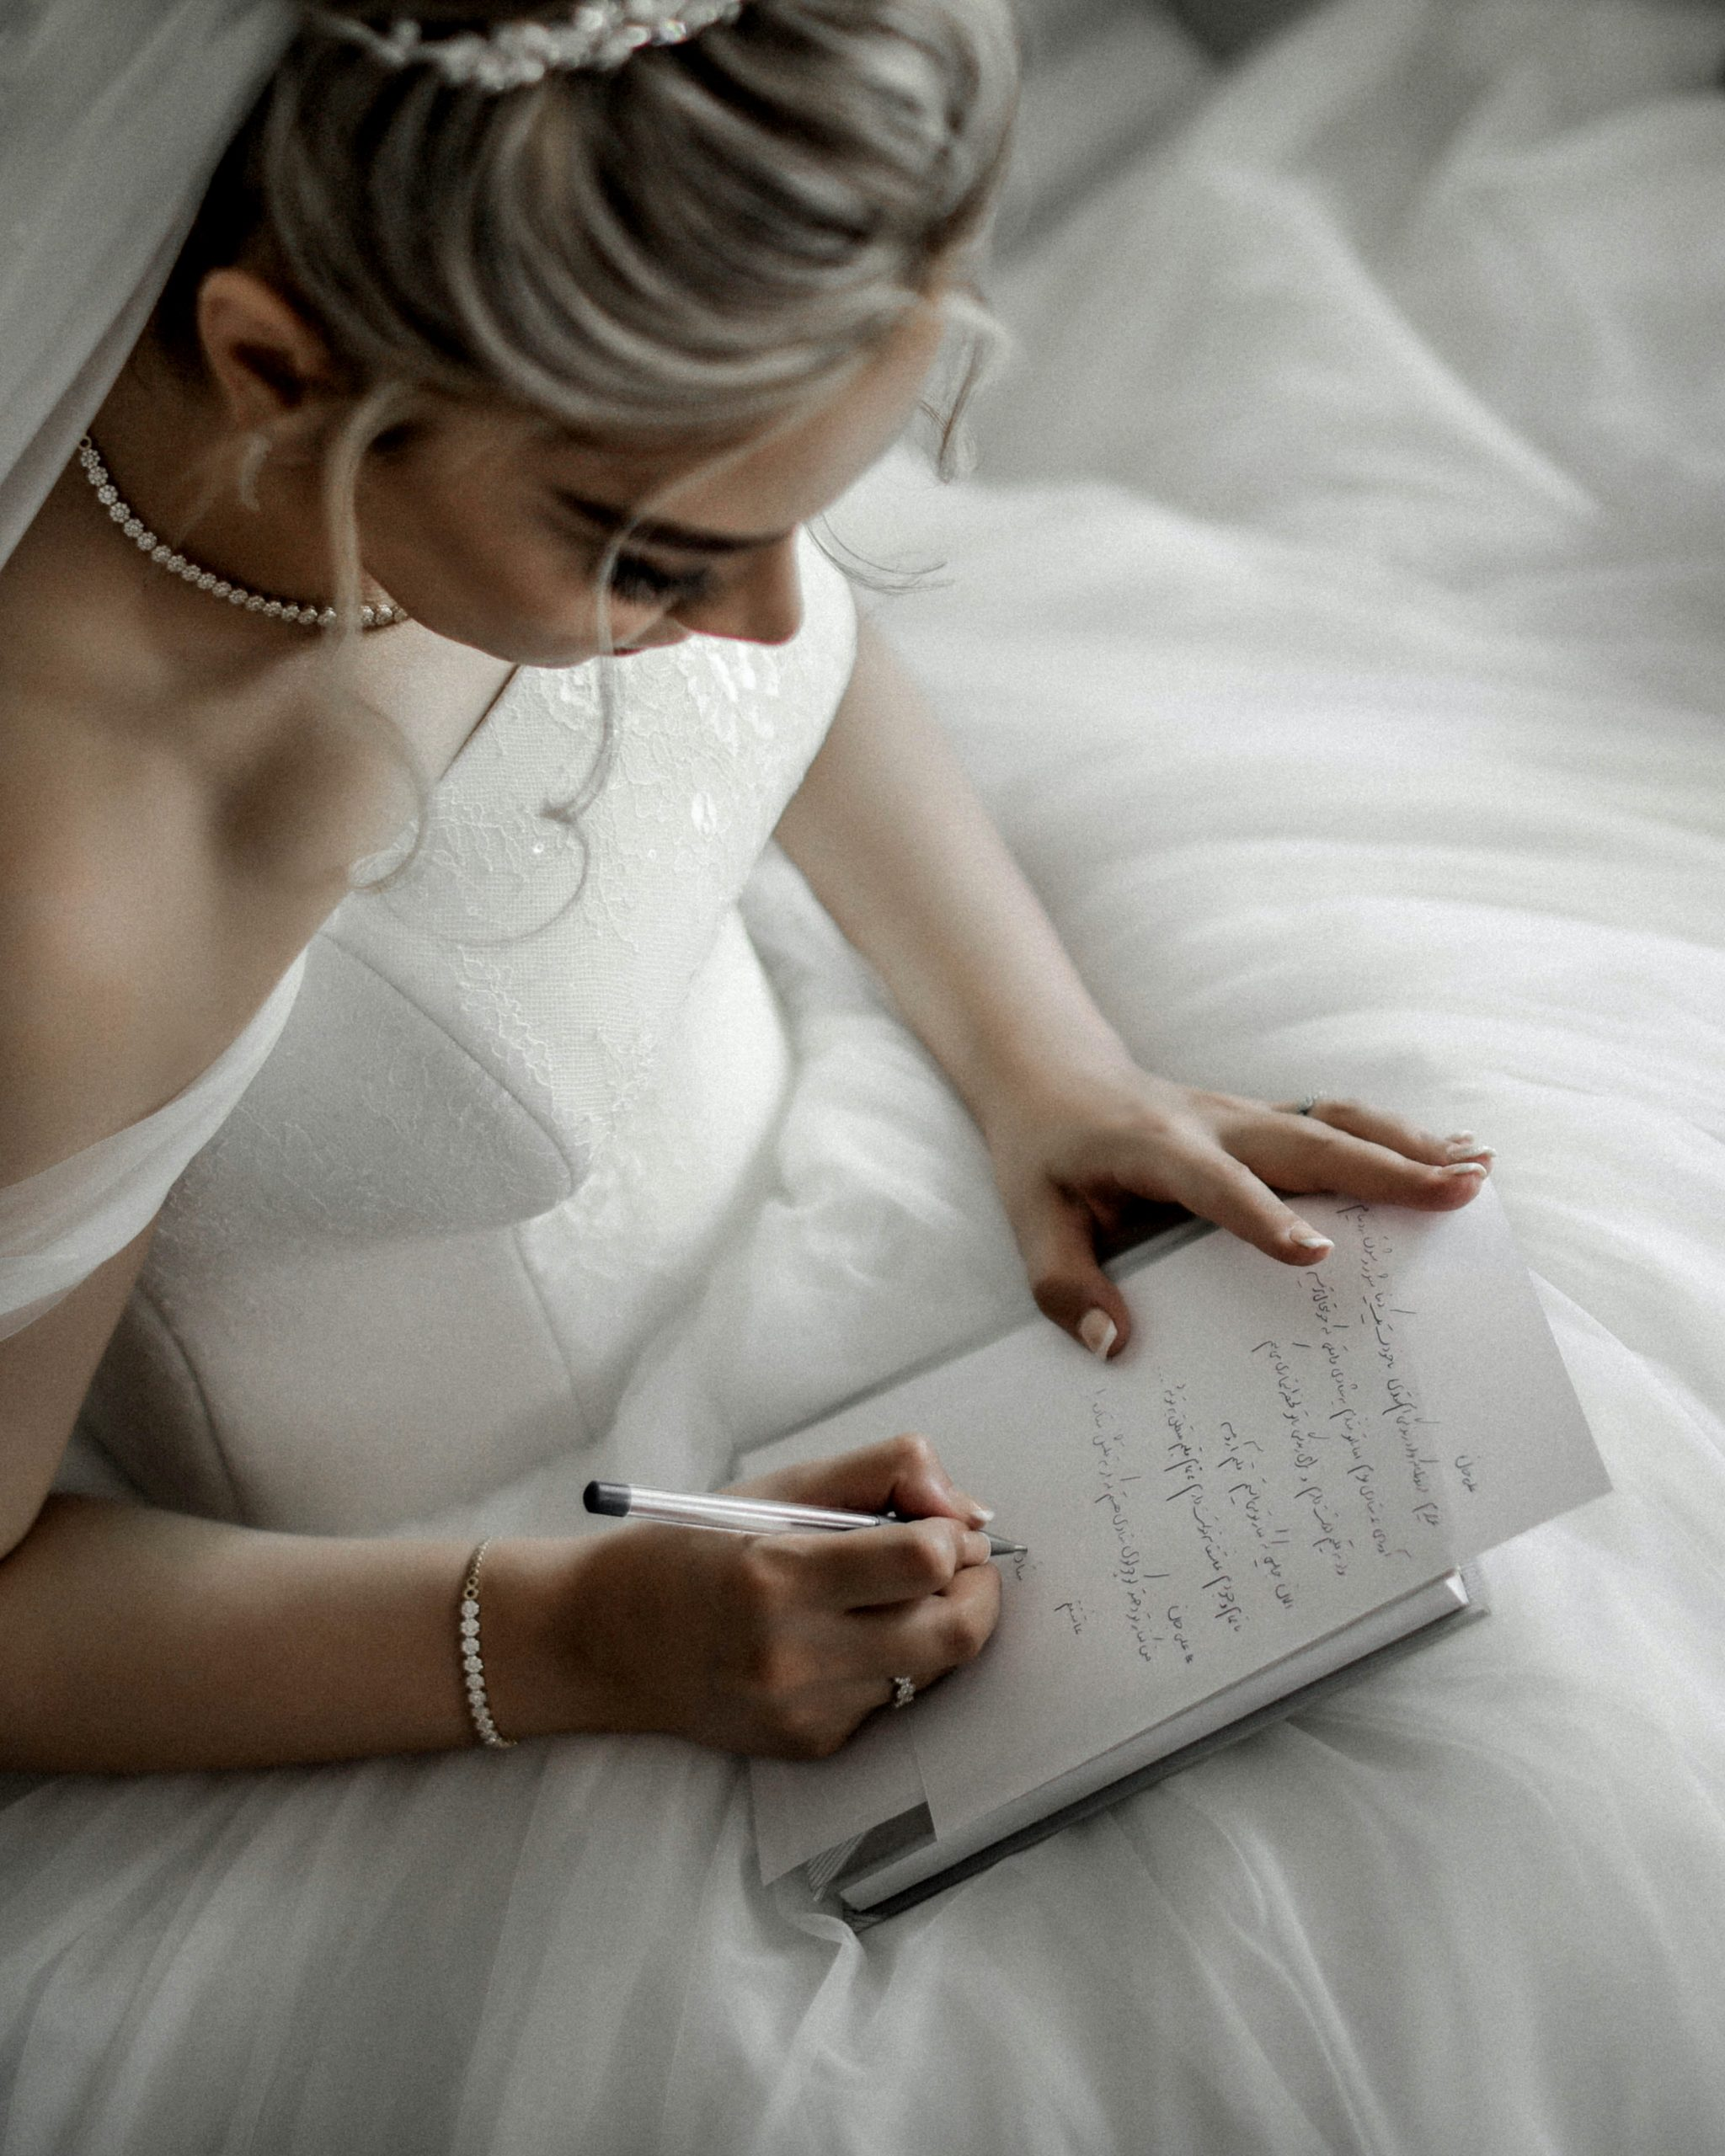 a woman in a wedding dress going down a checklist